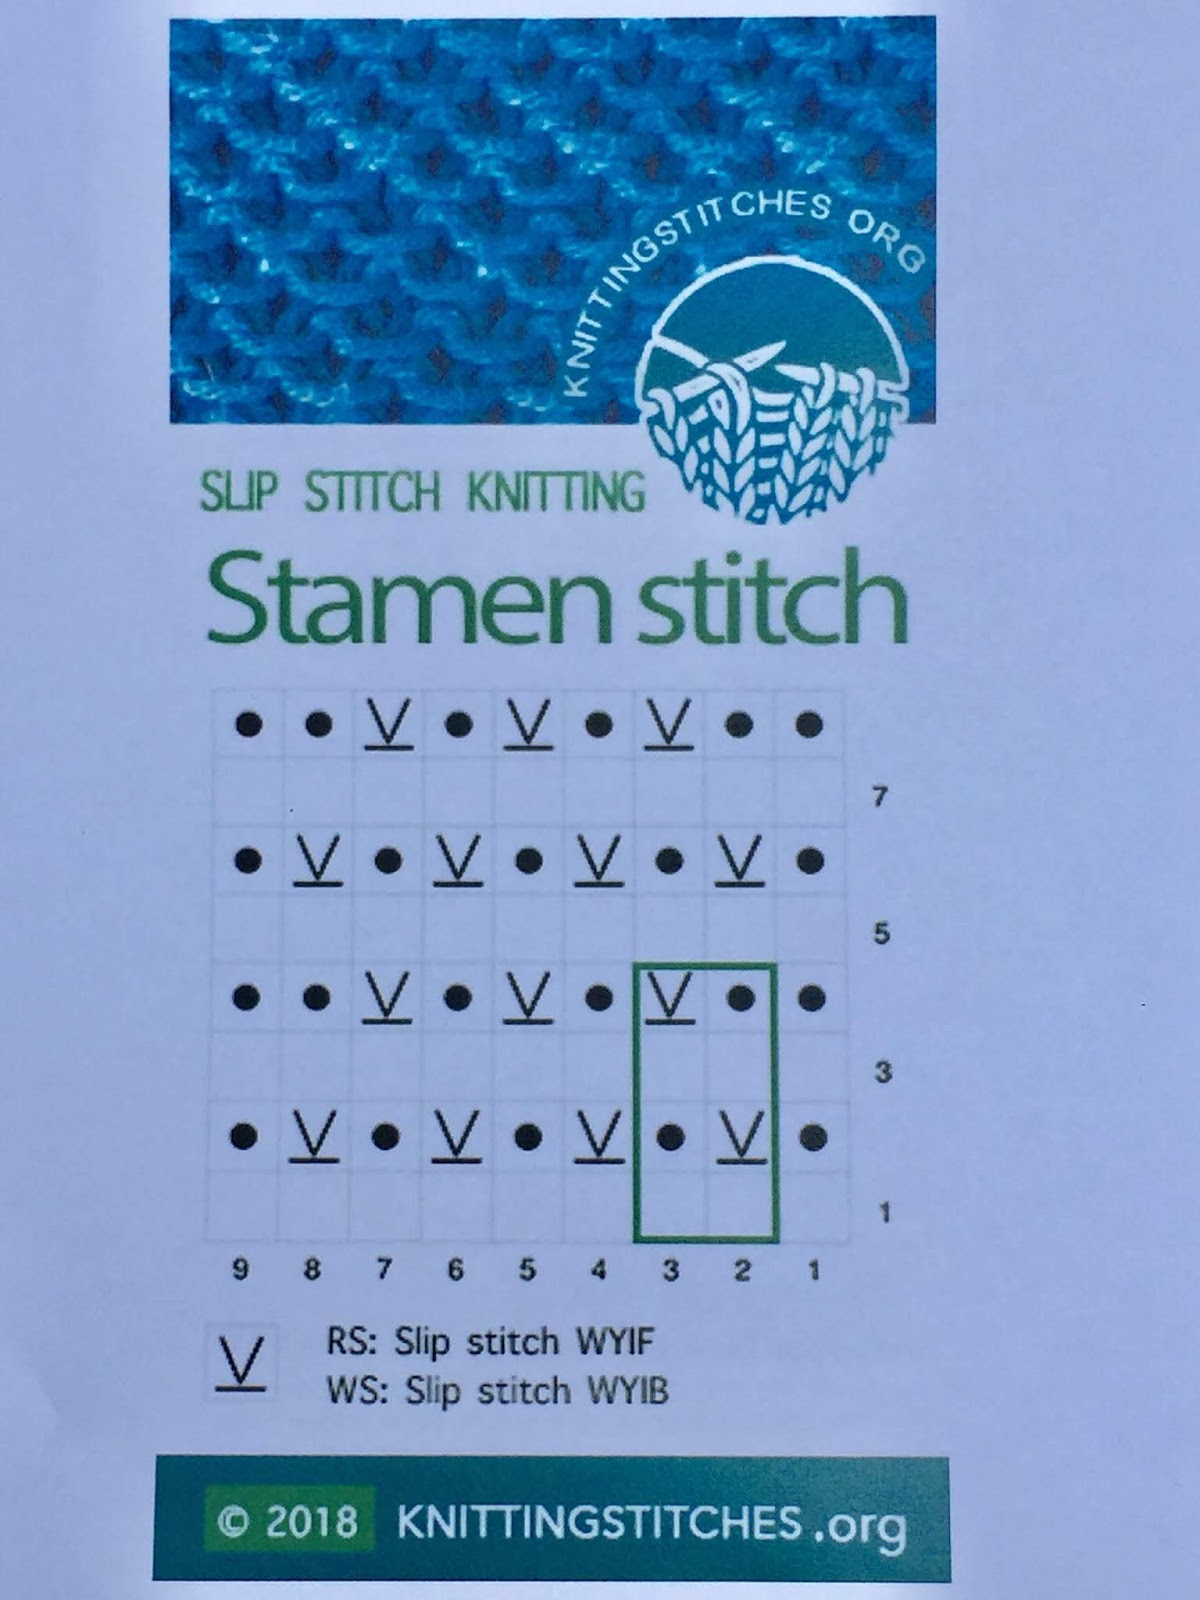 Knitting Stitches 2018 - Stamen pattern